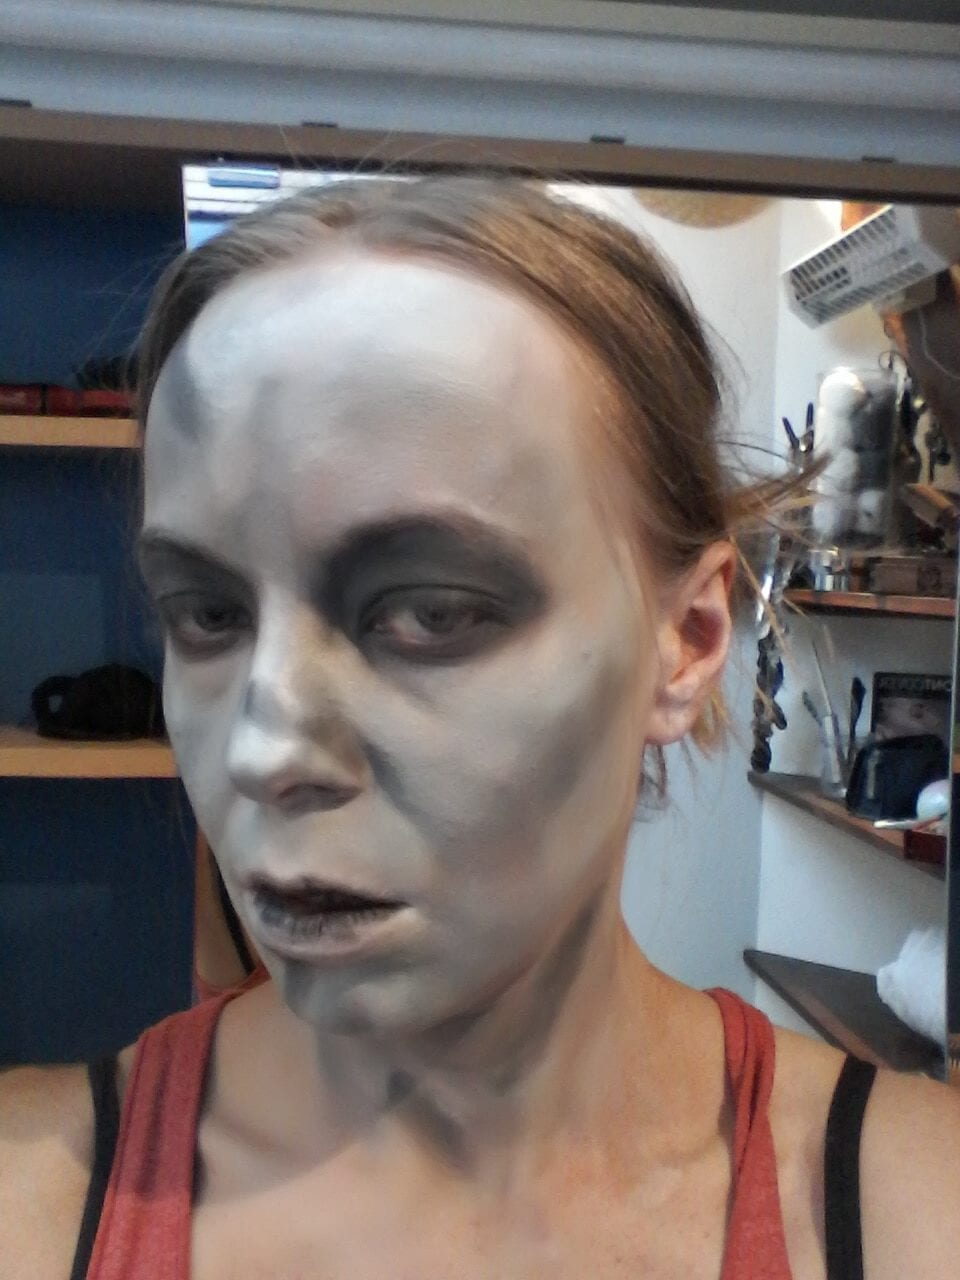 Maquillage halloween - l'exorciste - yeux noirs